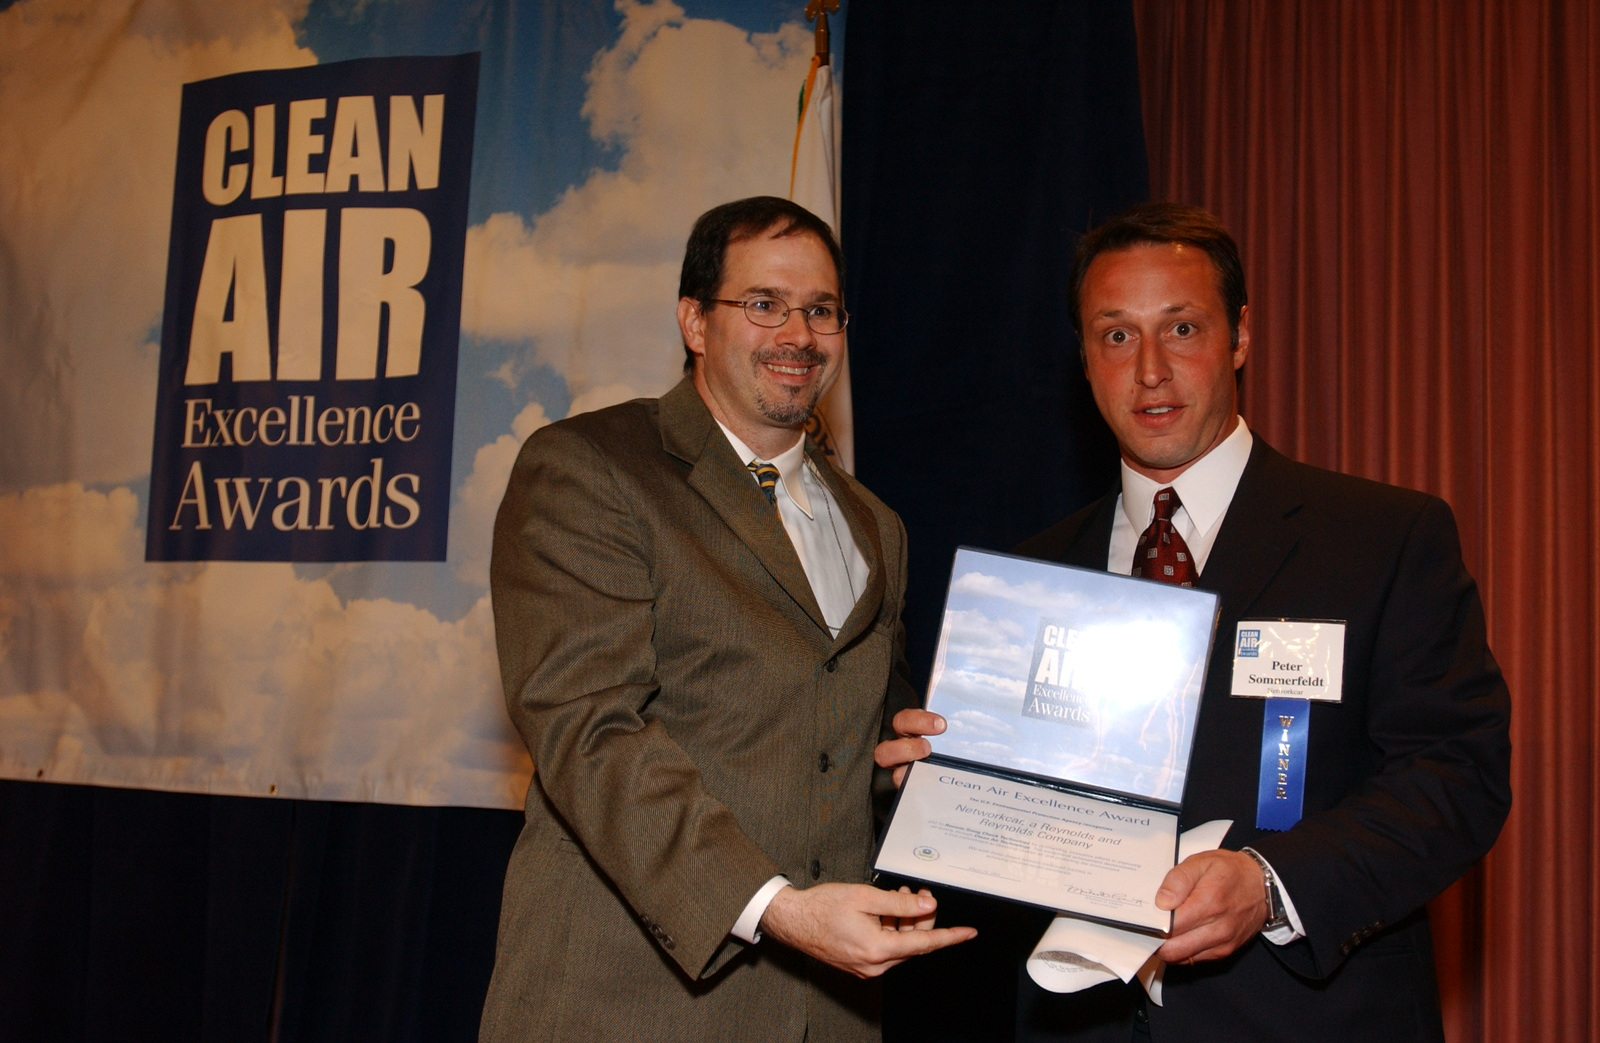 Mike Leavitt with unknown individuals; Stephen Johnson at Clean Air Excellence Awards [412-APD-A214-DSC_0332.JPG]